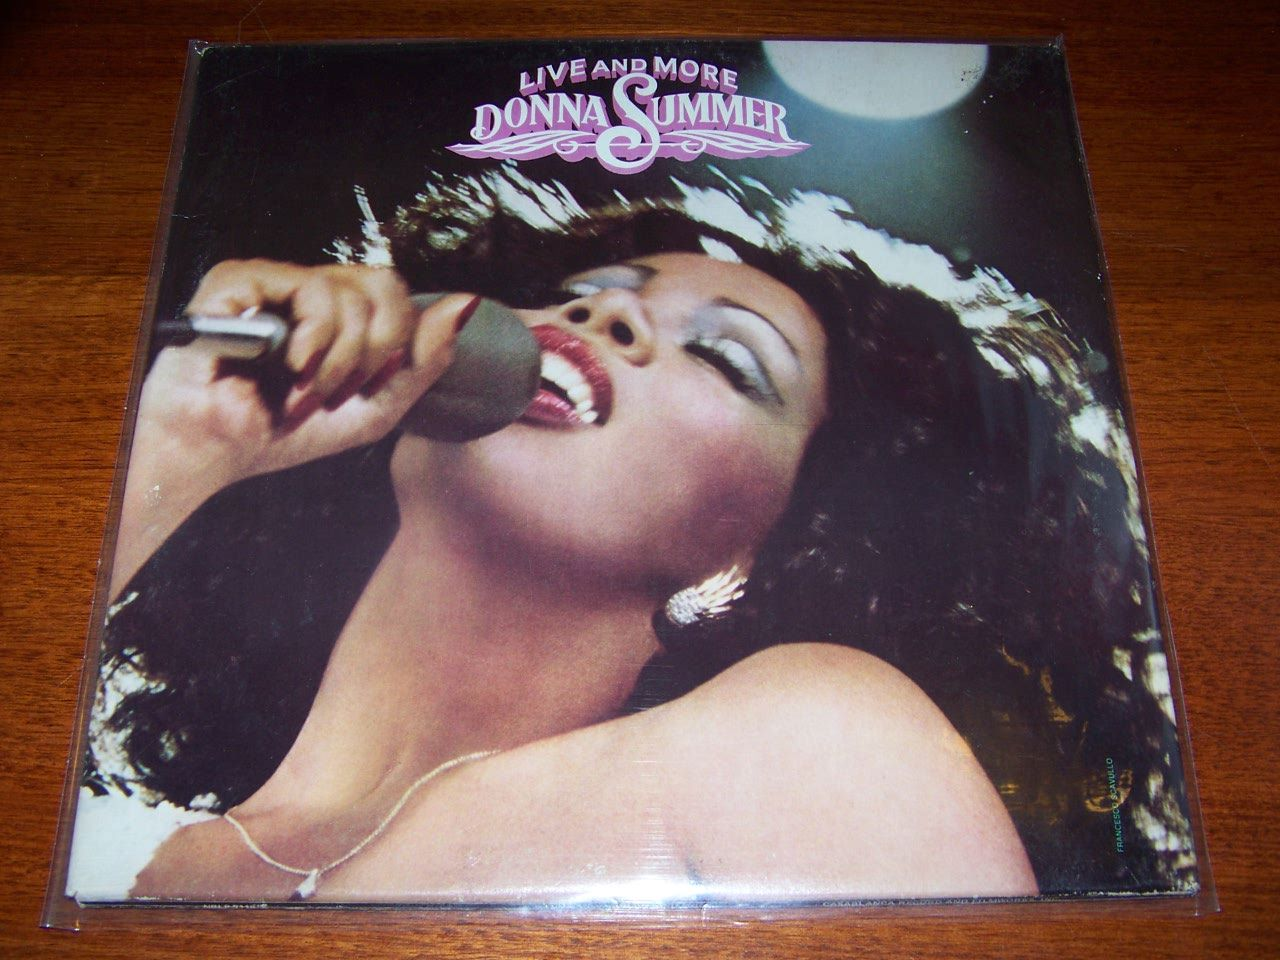 Live-and-More-Donna-Summer-NEAR-MINT-2Lp-Set-Double-Gatefold-1978